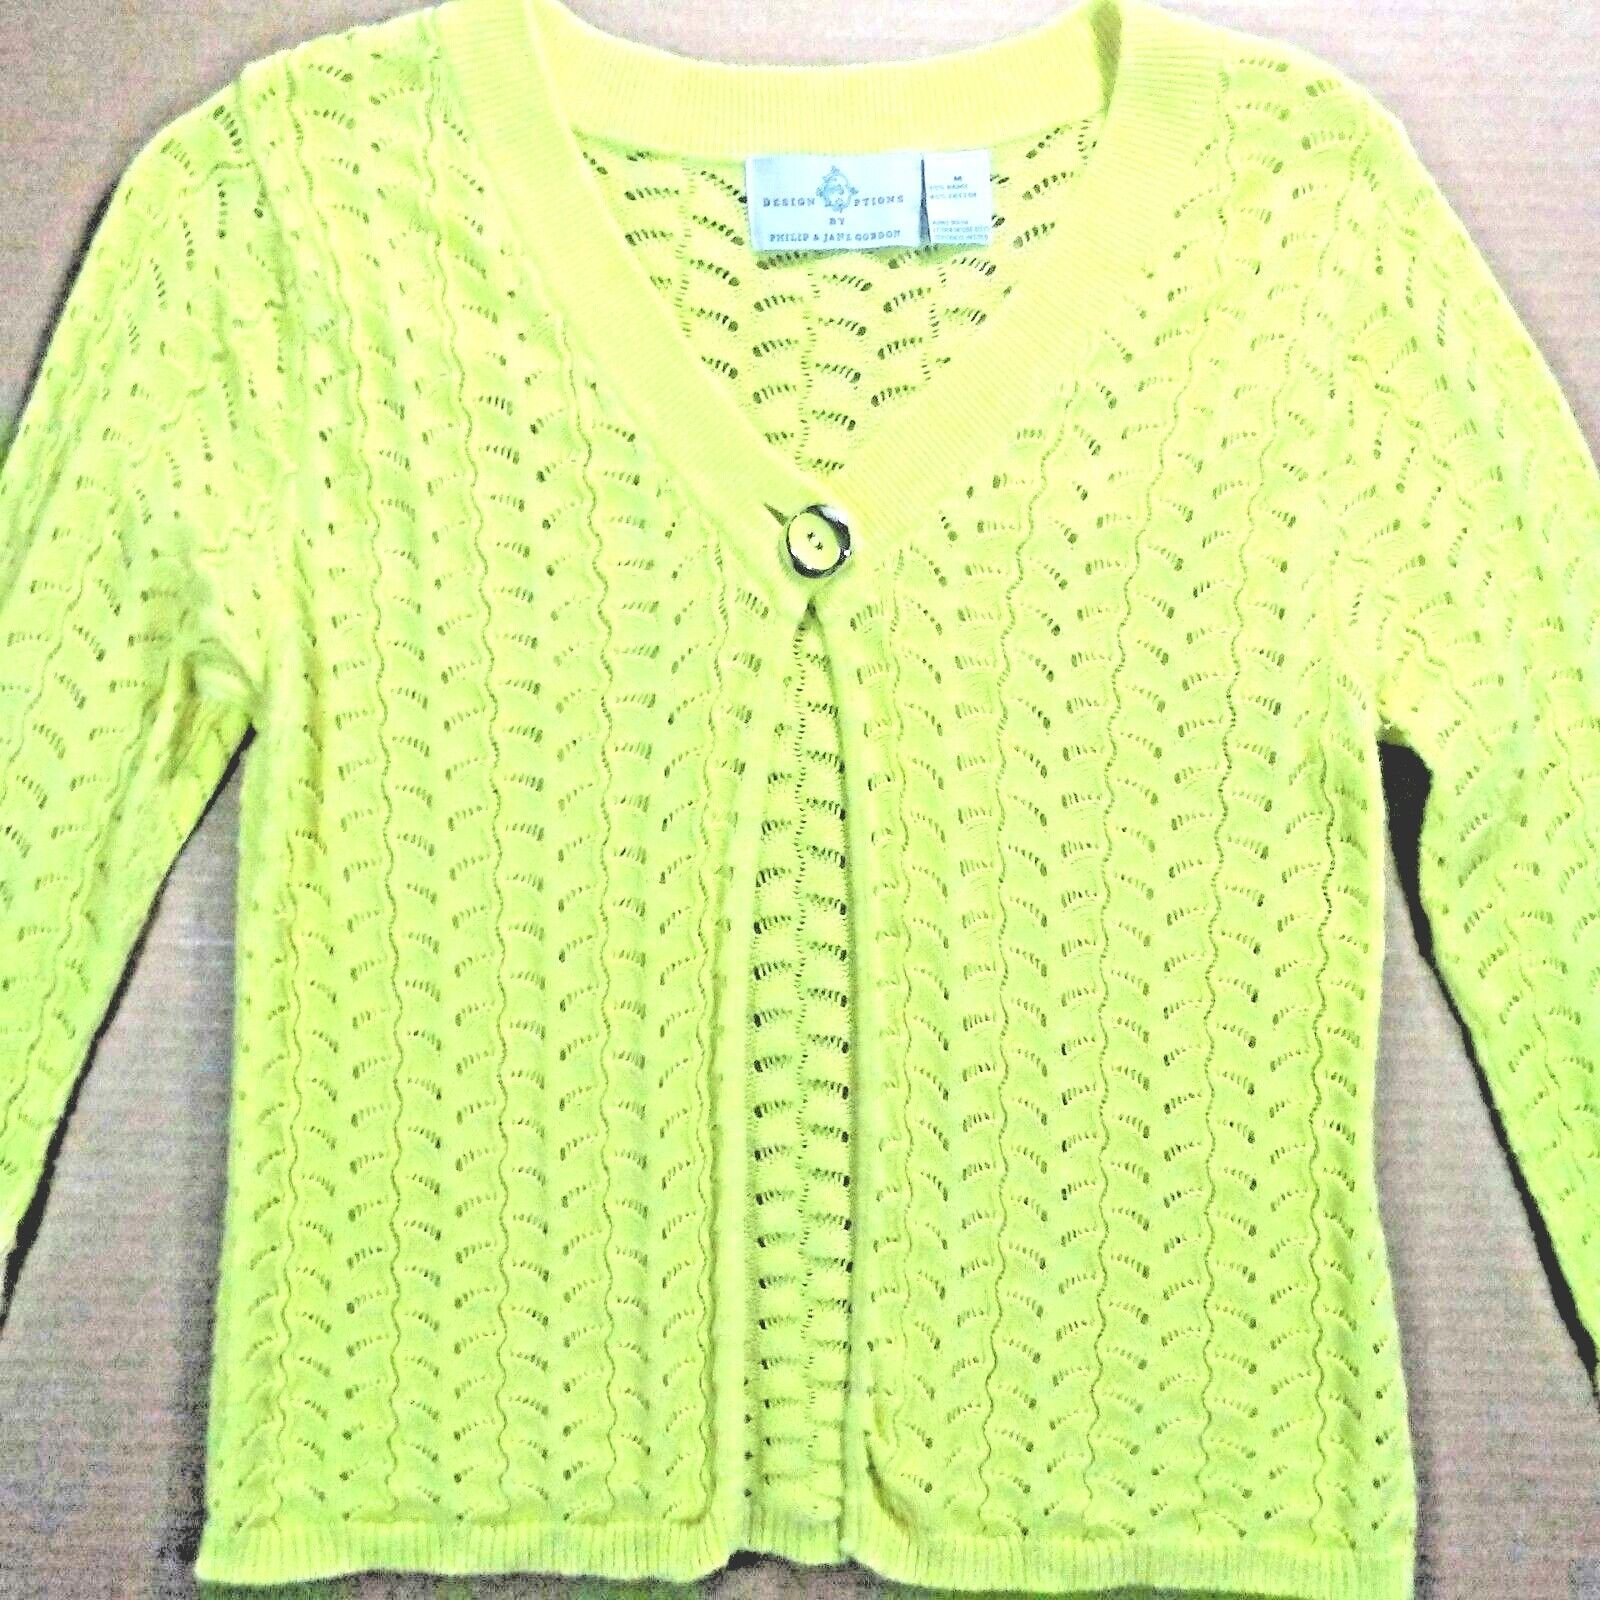 dc9ee72d0 Cardigan Knit Yellow Open Gordon & Philip Options Design Sweater ...